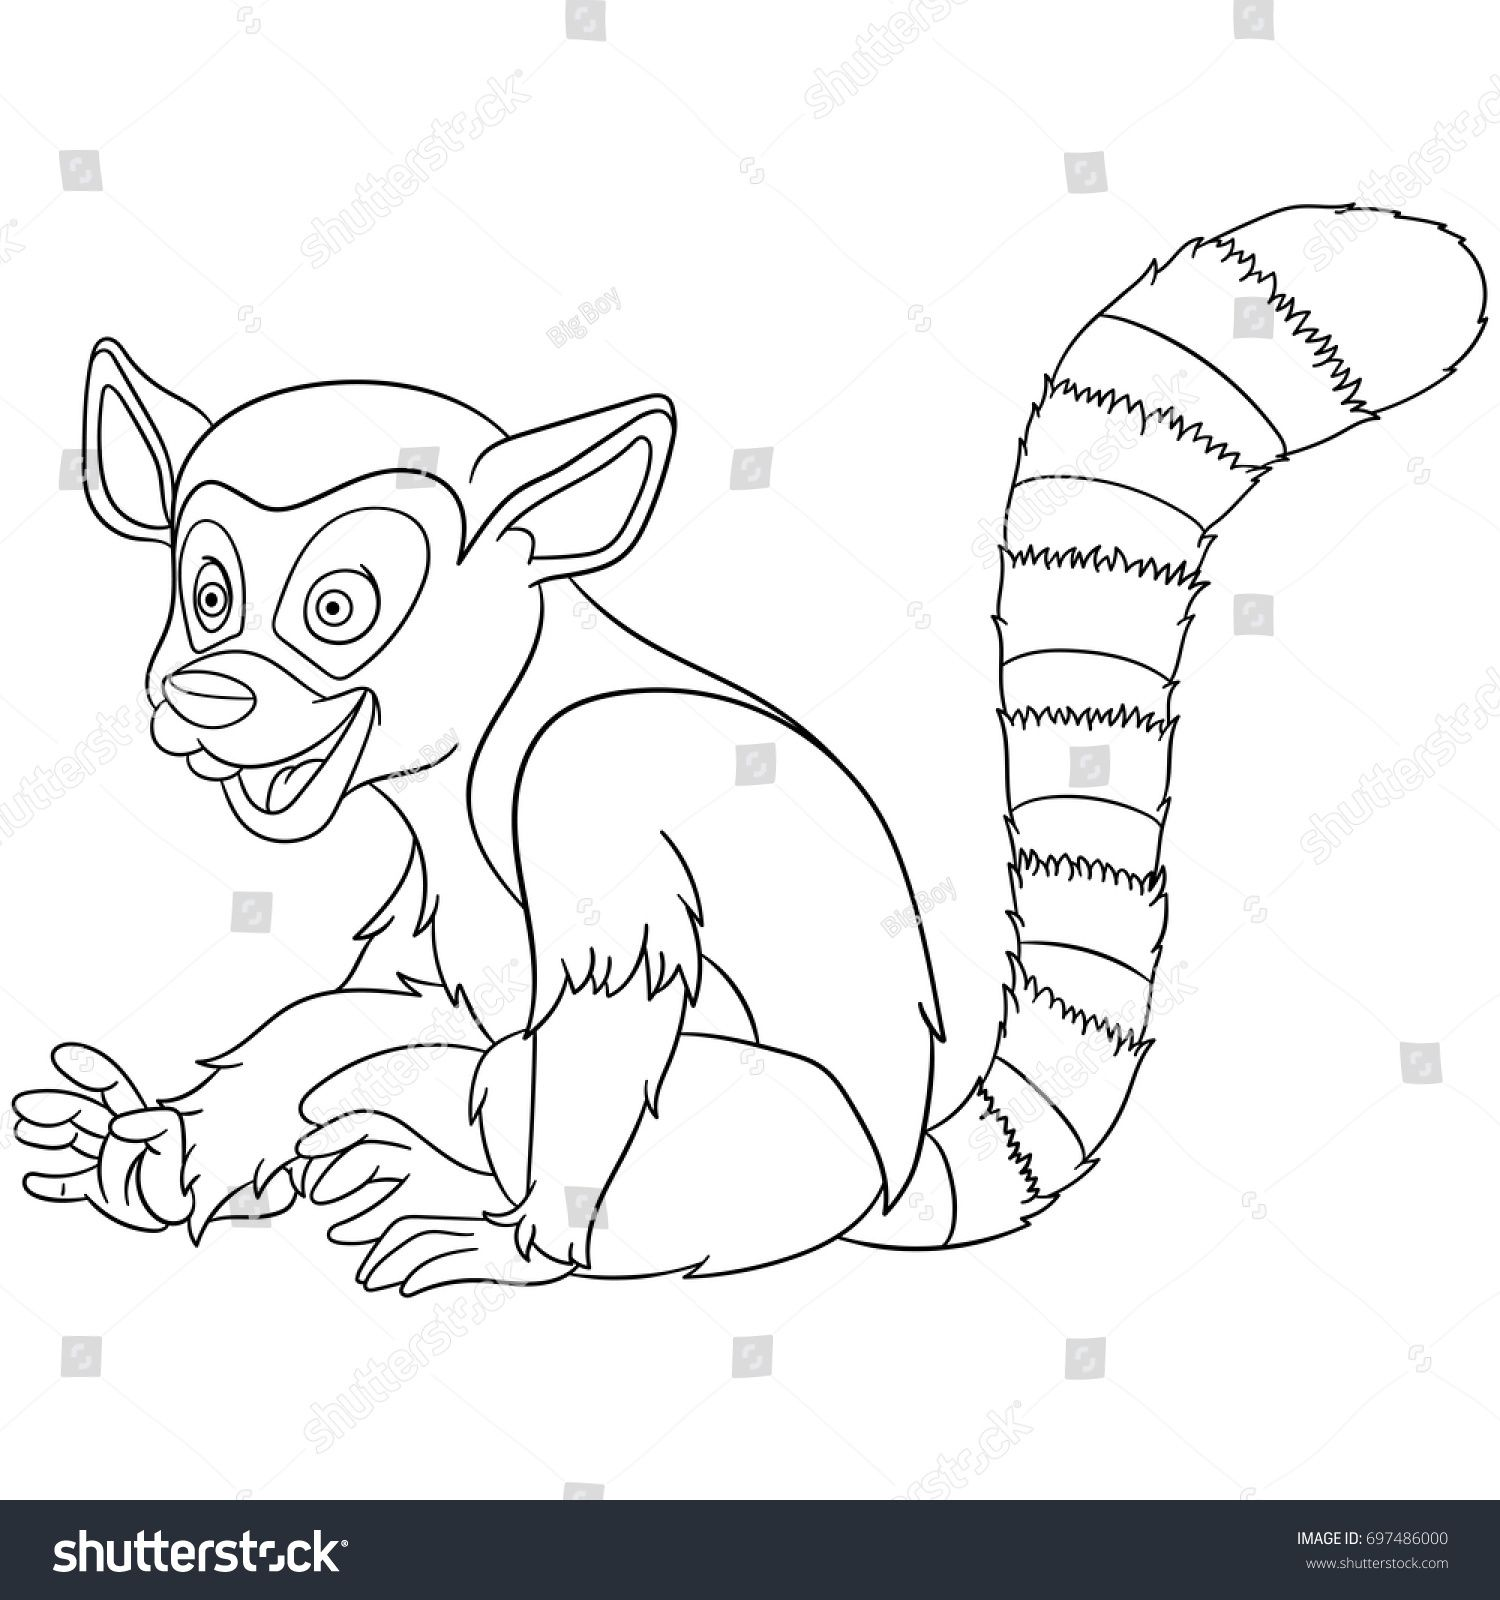 Coloring Page Of Cartoon Lemur Animal Book Design For Kids And Children